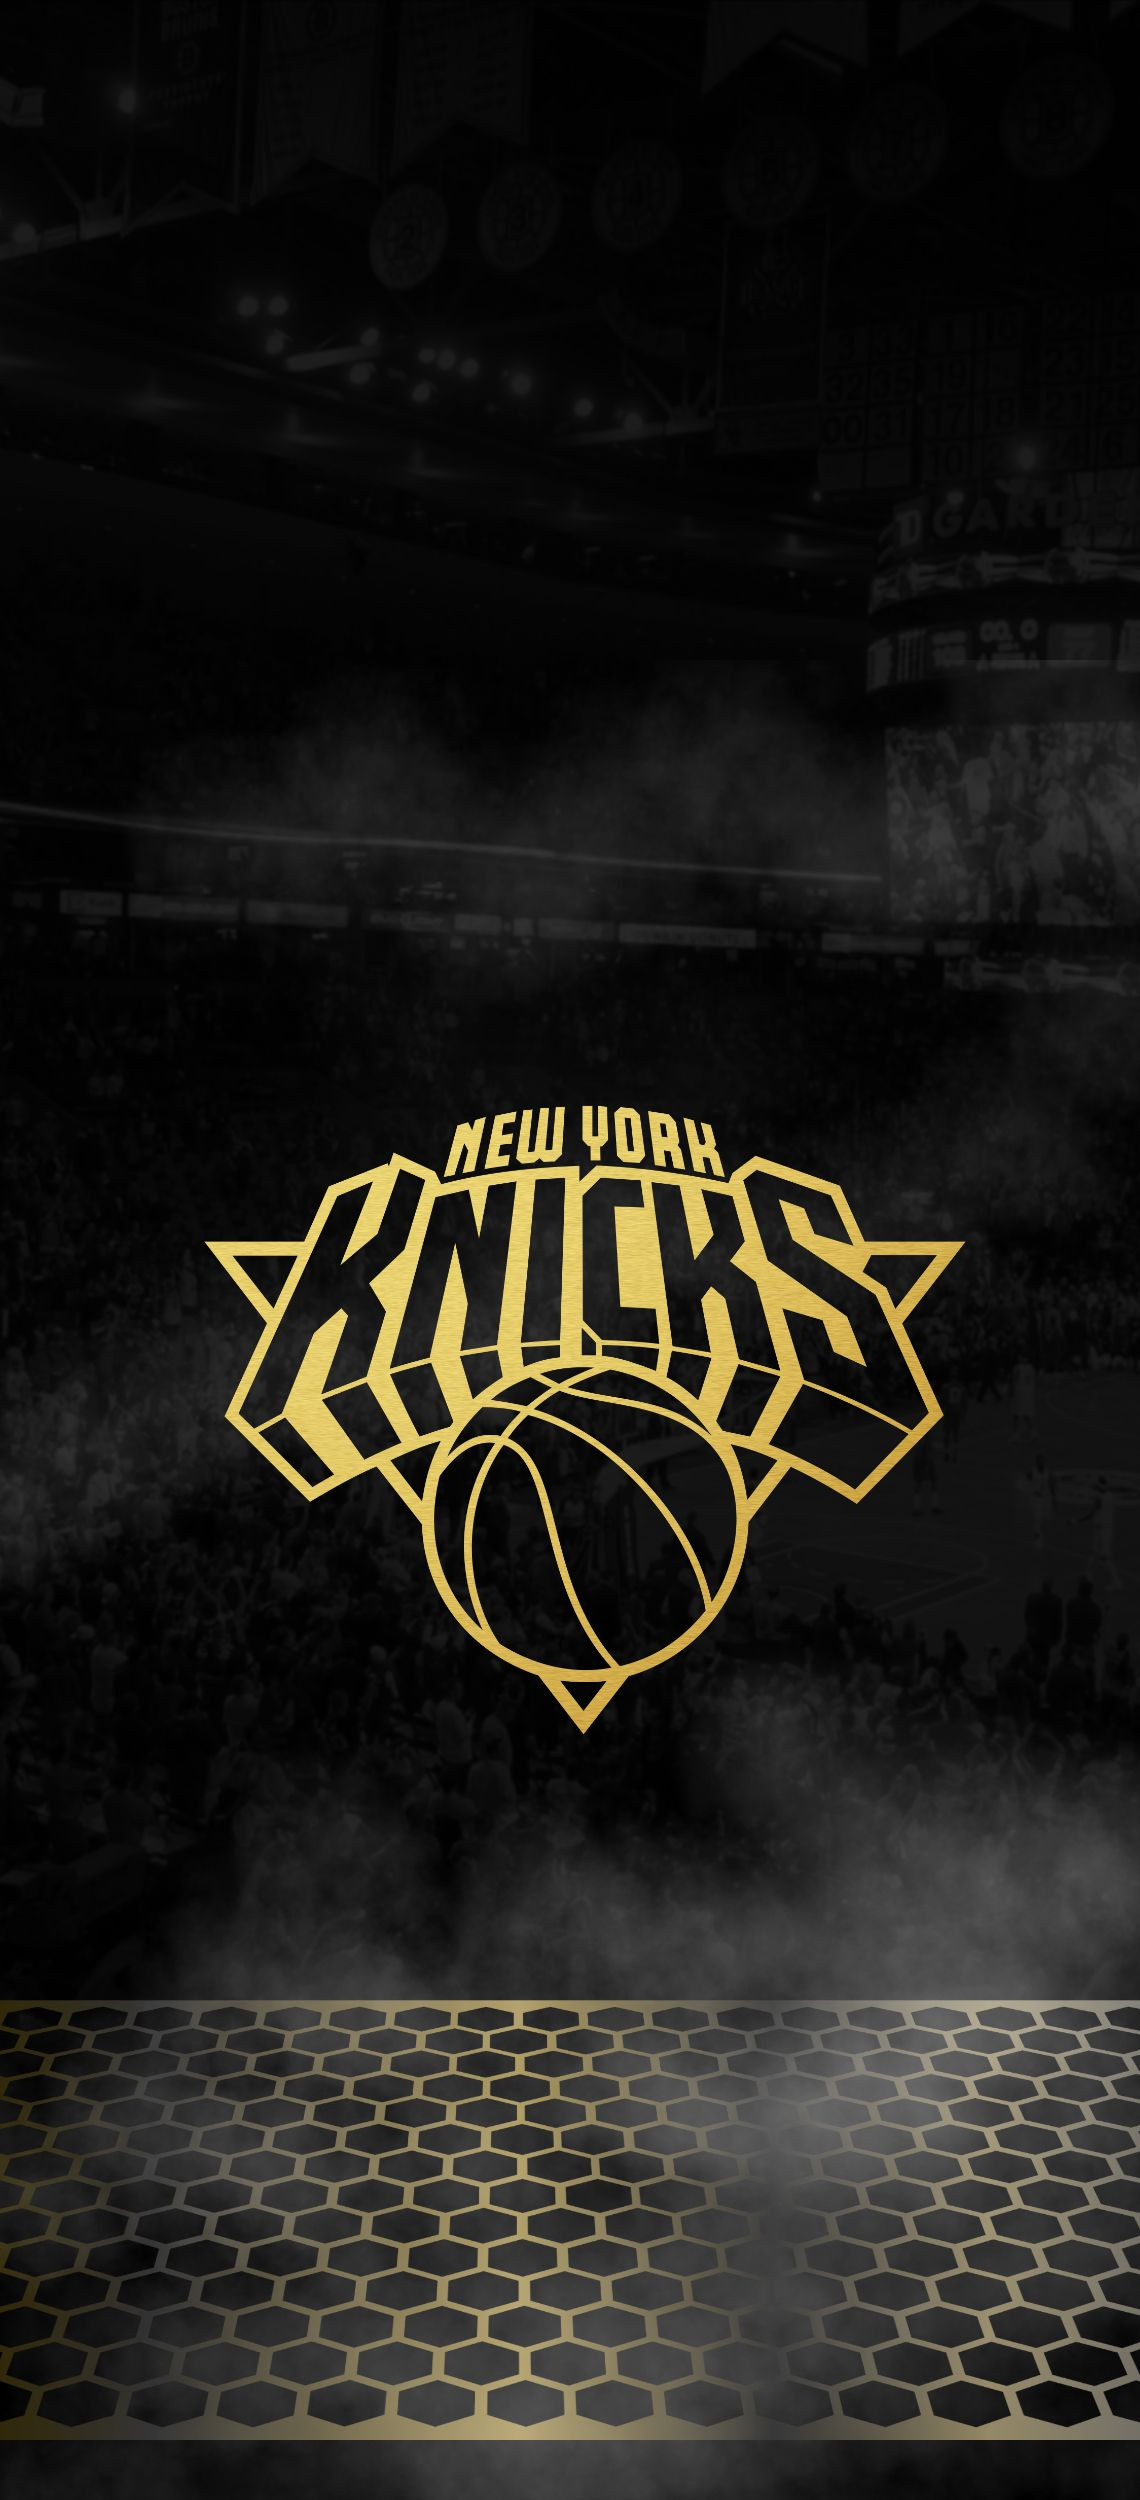 Nba Basketball Team New York Knicks Iphone Wallpaper Background